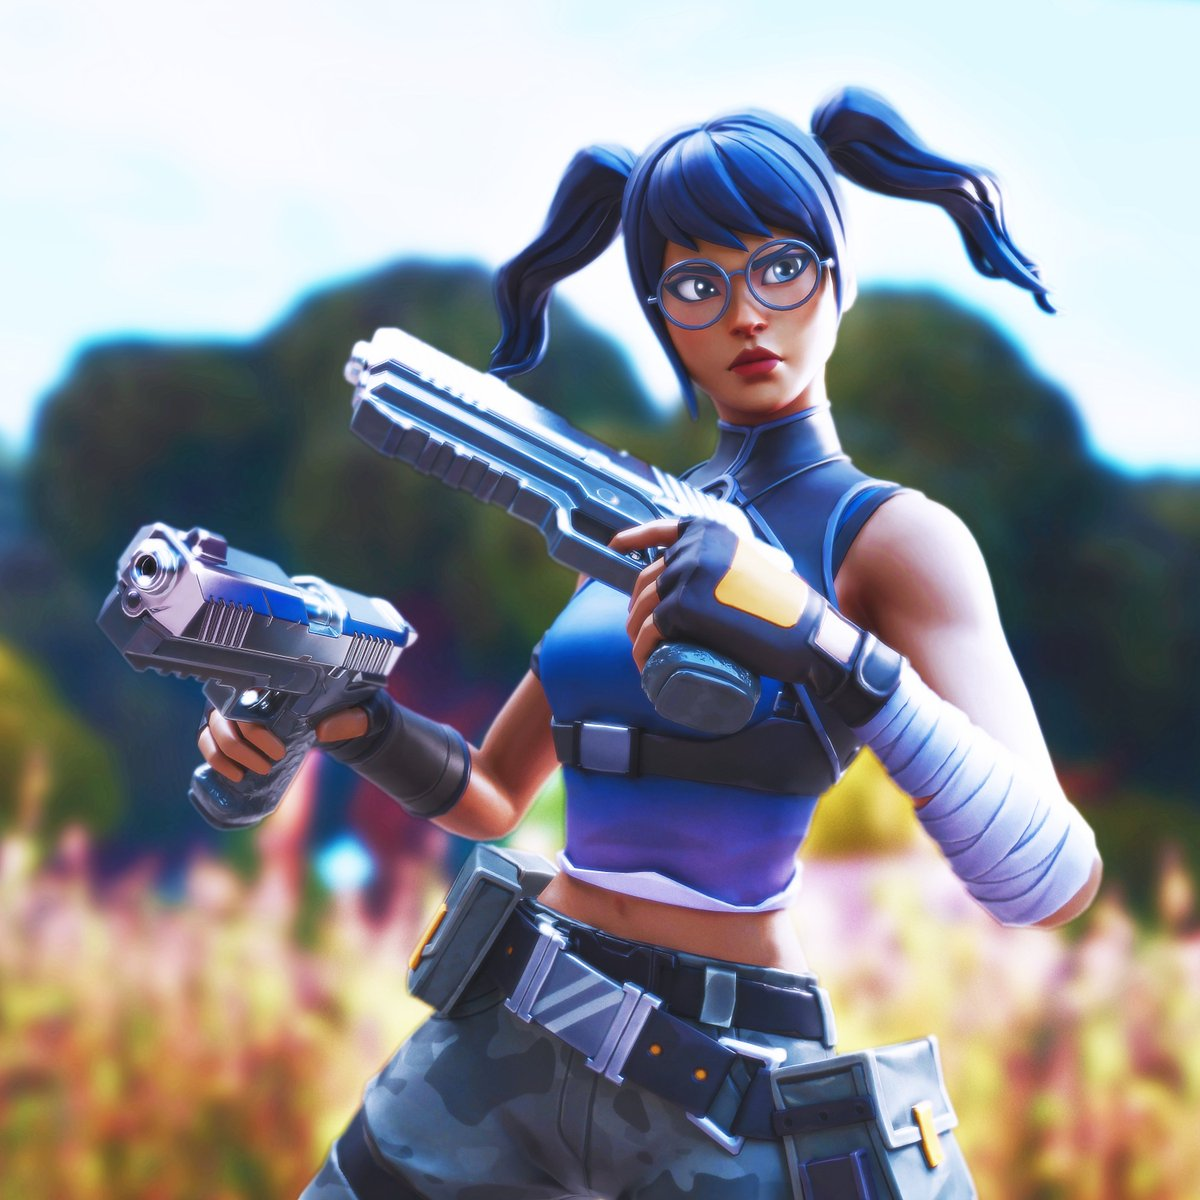 Fortnite Crystal Skin Posted By Zoey Sellers